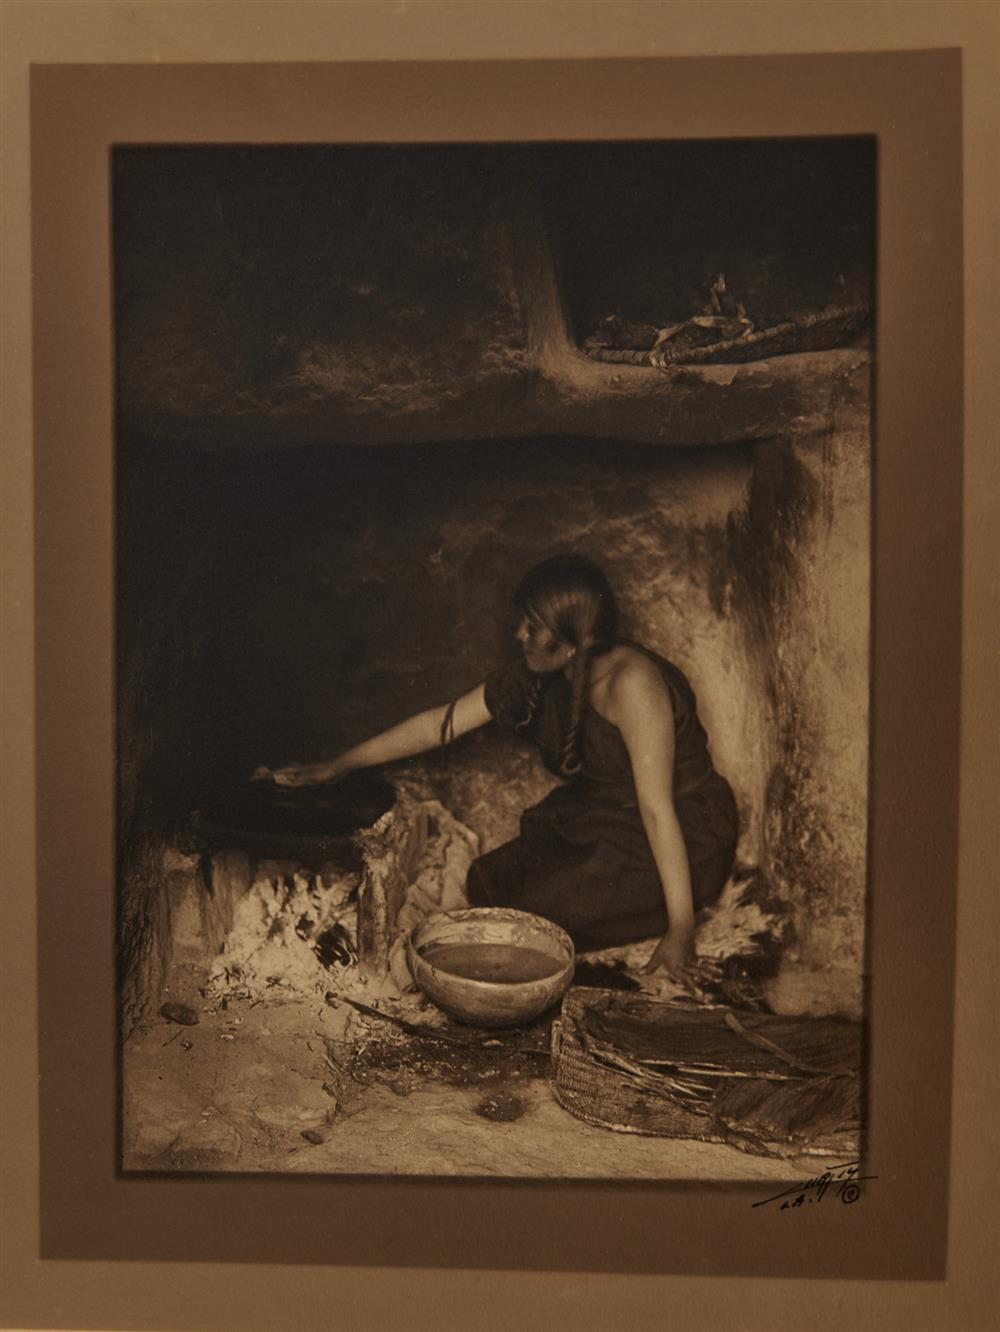 EDWARD SHERIFF CURTIS, (American, 1868-1952), The Piki Maker, double border silver gelatin print, image: 7 1/2 x 5 5/8 in.; sheet: 13 3/8 x 10 in.